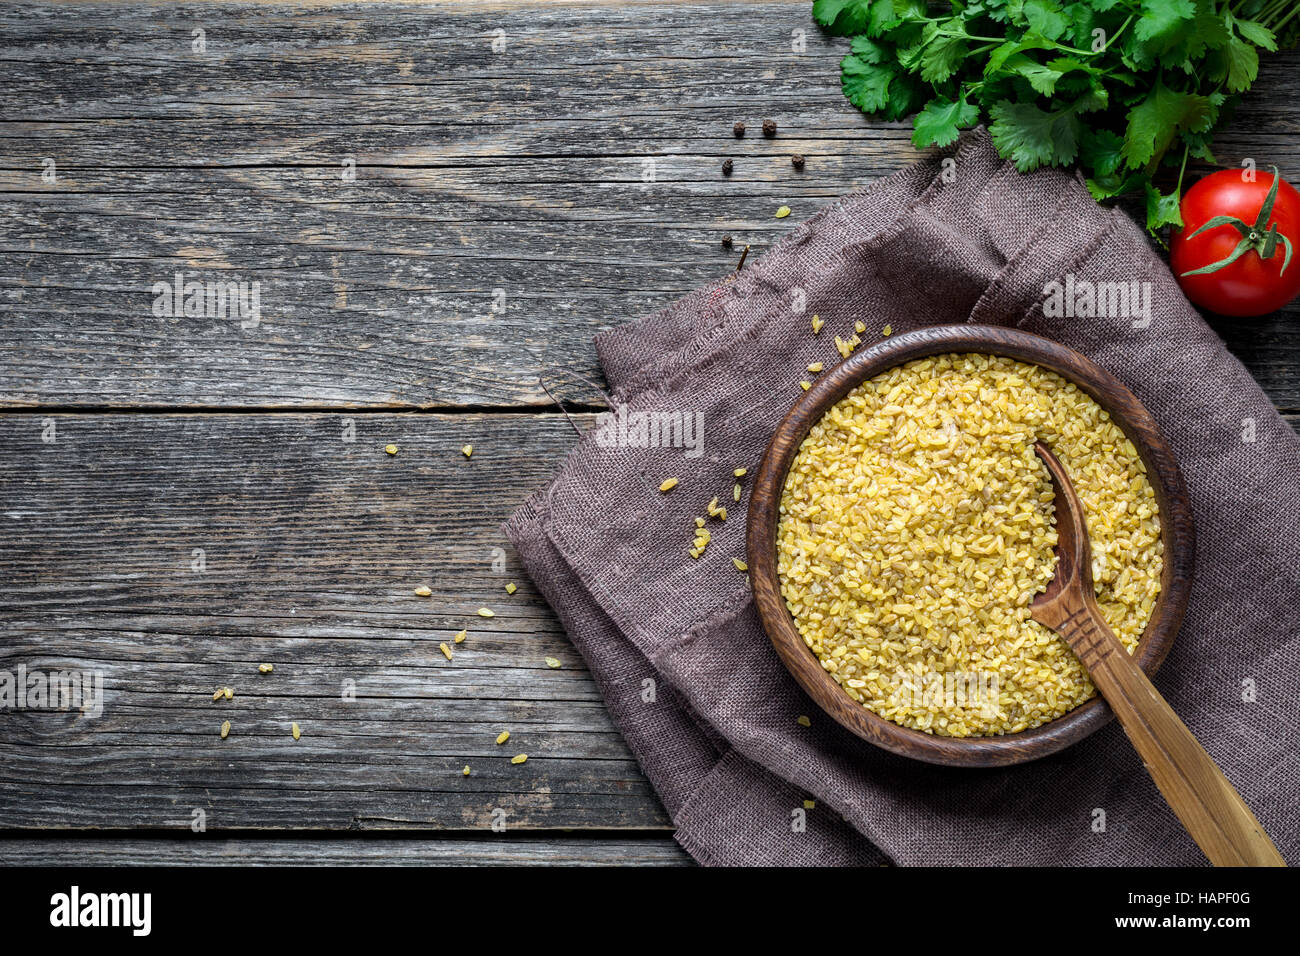 Bulgur (dry wheat grains) in wooden bowl, fresh parsley, tomato and spices on wooden table background. Top view - Stock Image